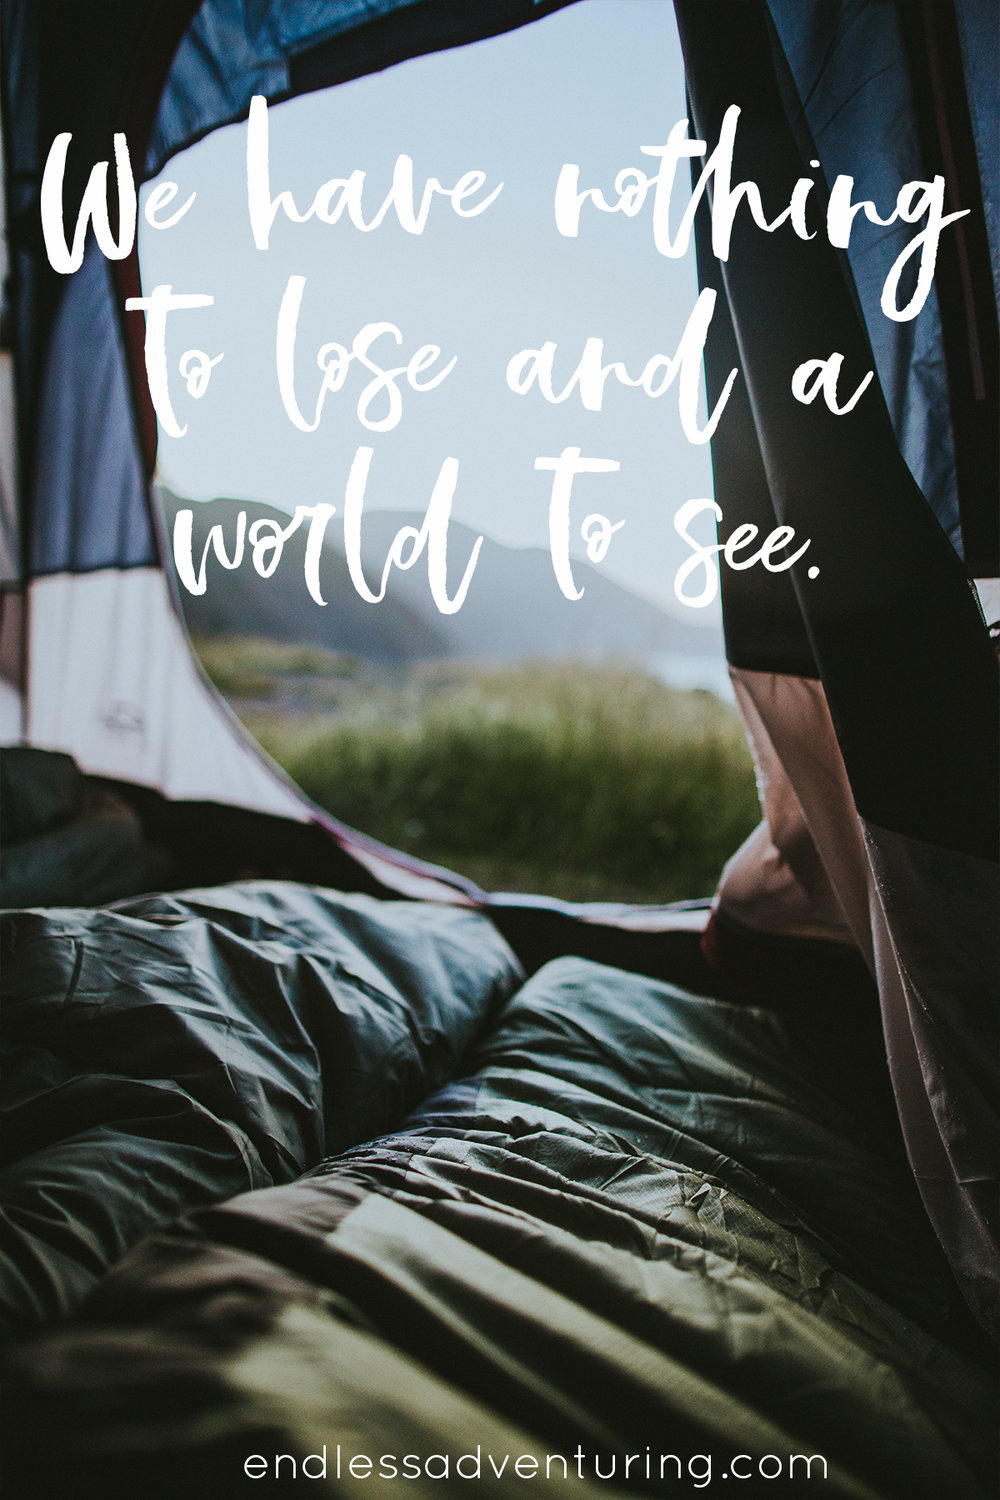 Travel Quote - We Have Nothing to Lose and a World To See